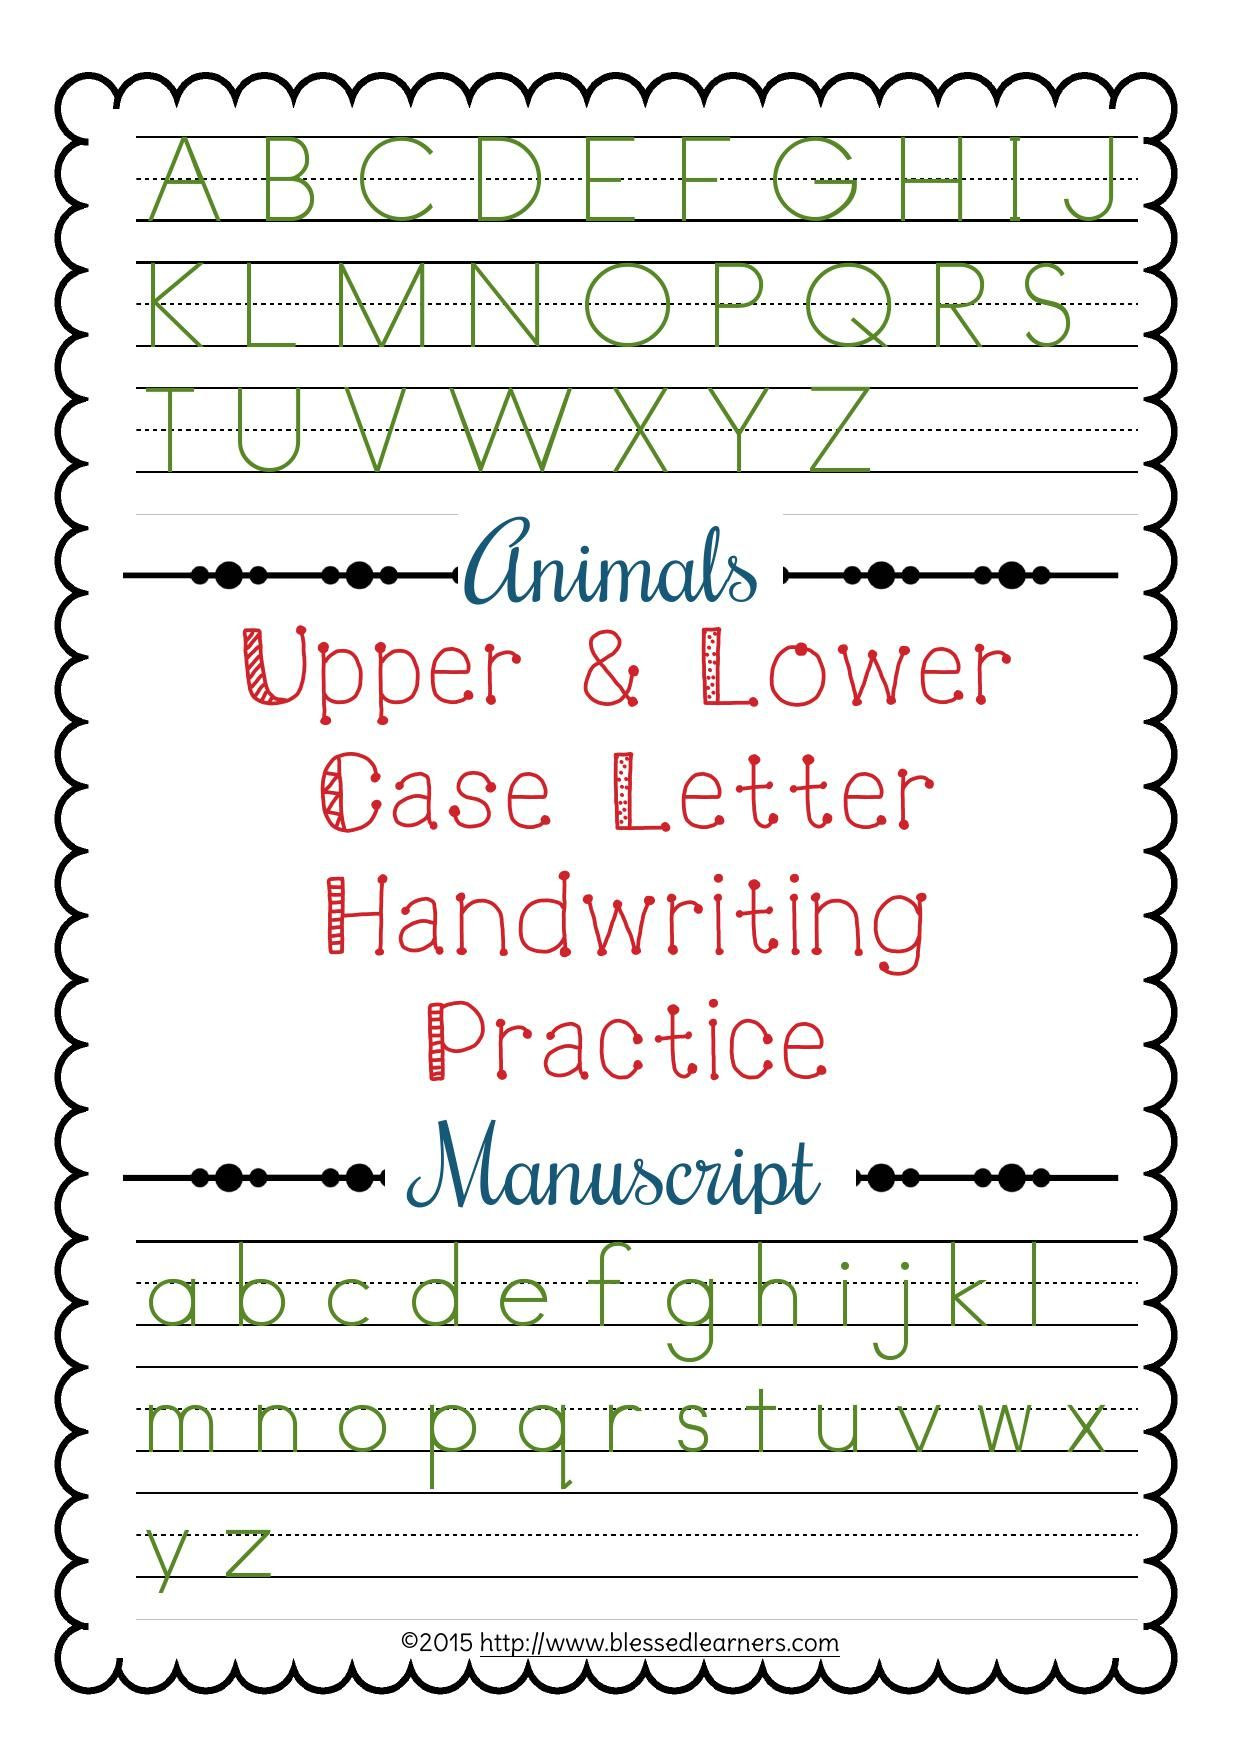 Upper and Lower Case Letter Handwriting Practice | Pinterest